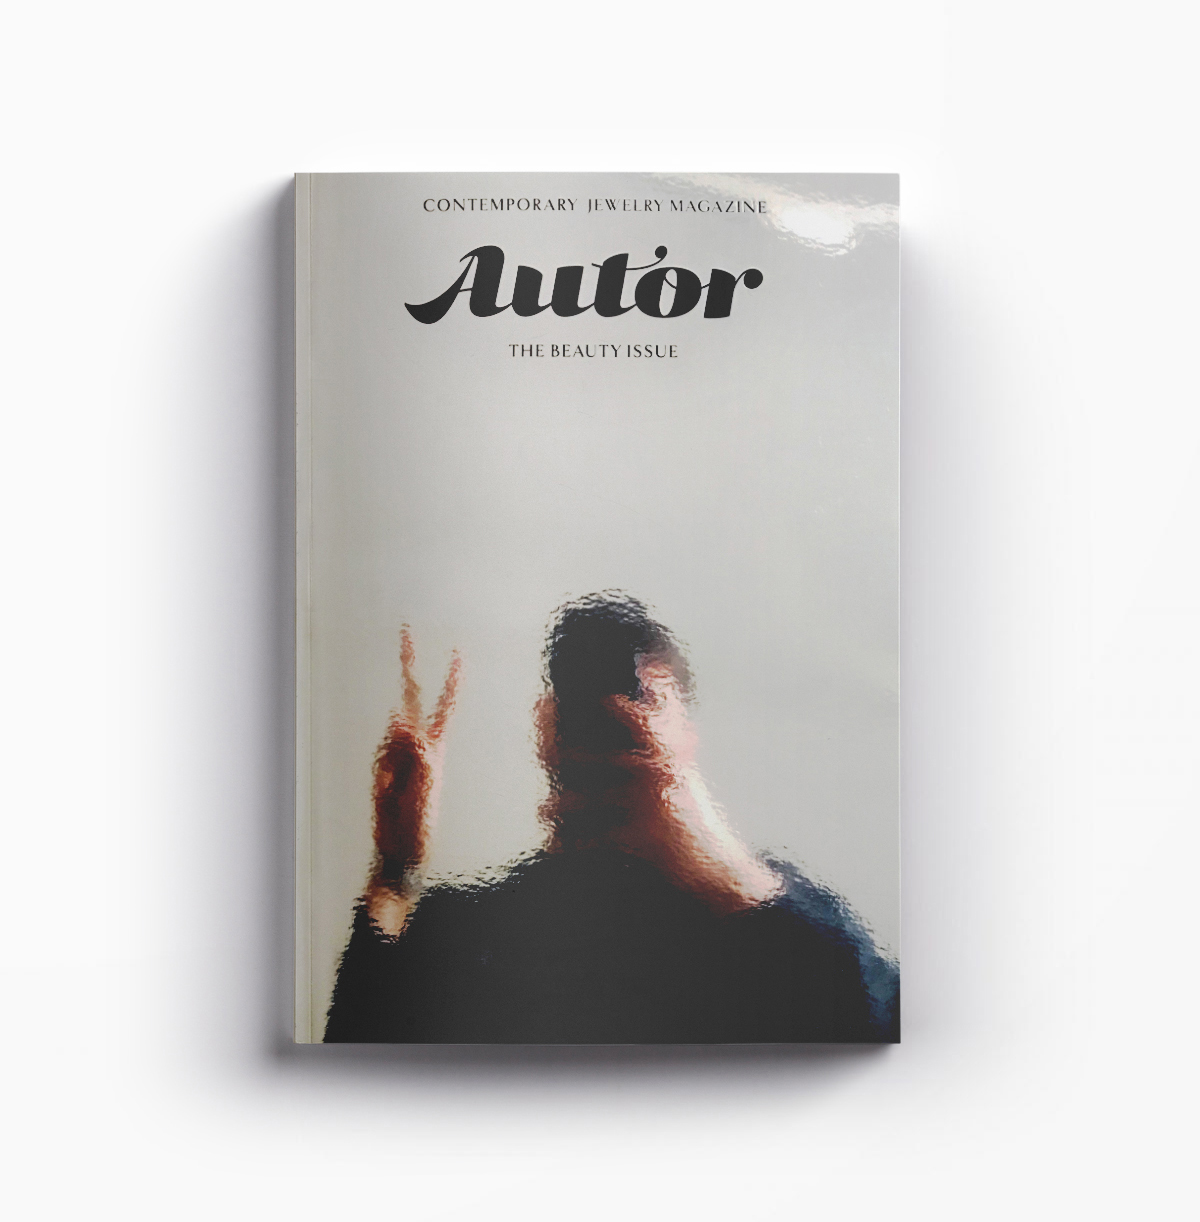 AUTOR Magazine is an annual publication which focuses on contemporary jewelry and on the way we choose to decorate our bodies